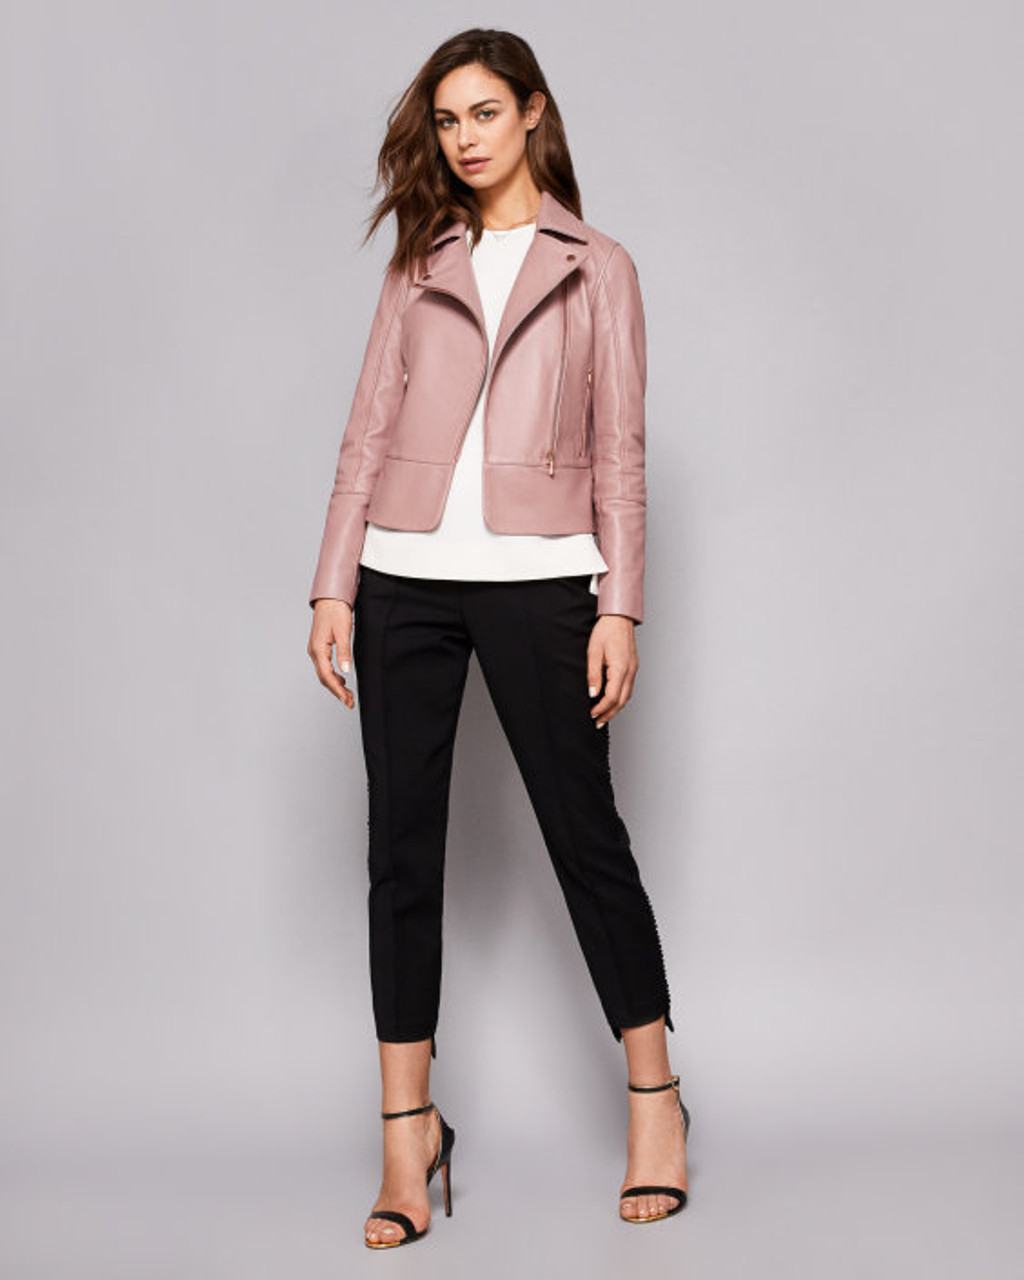 a3e7e5b8d836 Ted Baker LIZIA Leather Biker Jacket - STYLE by Turn Her Style